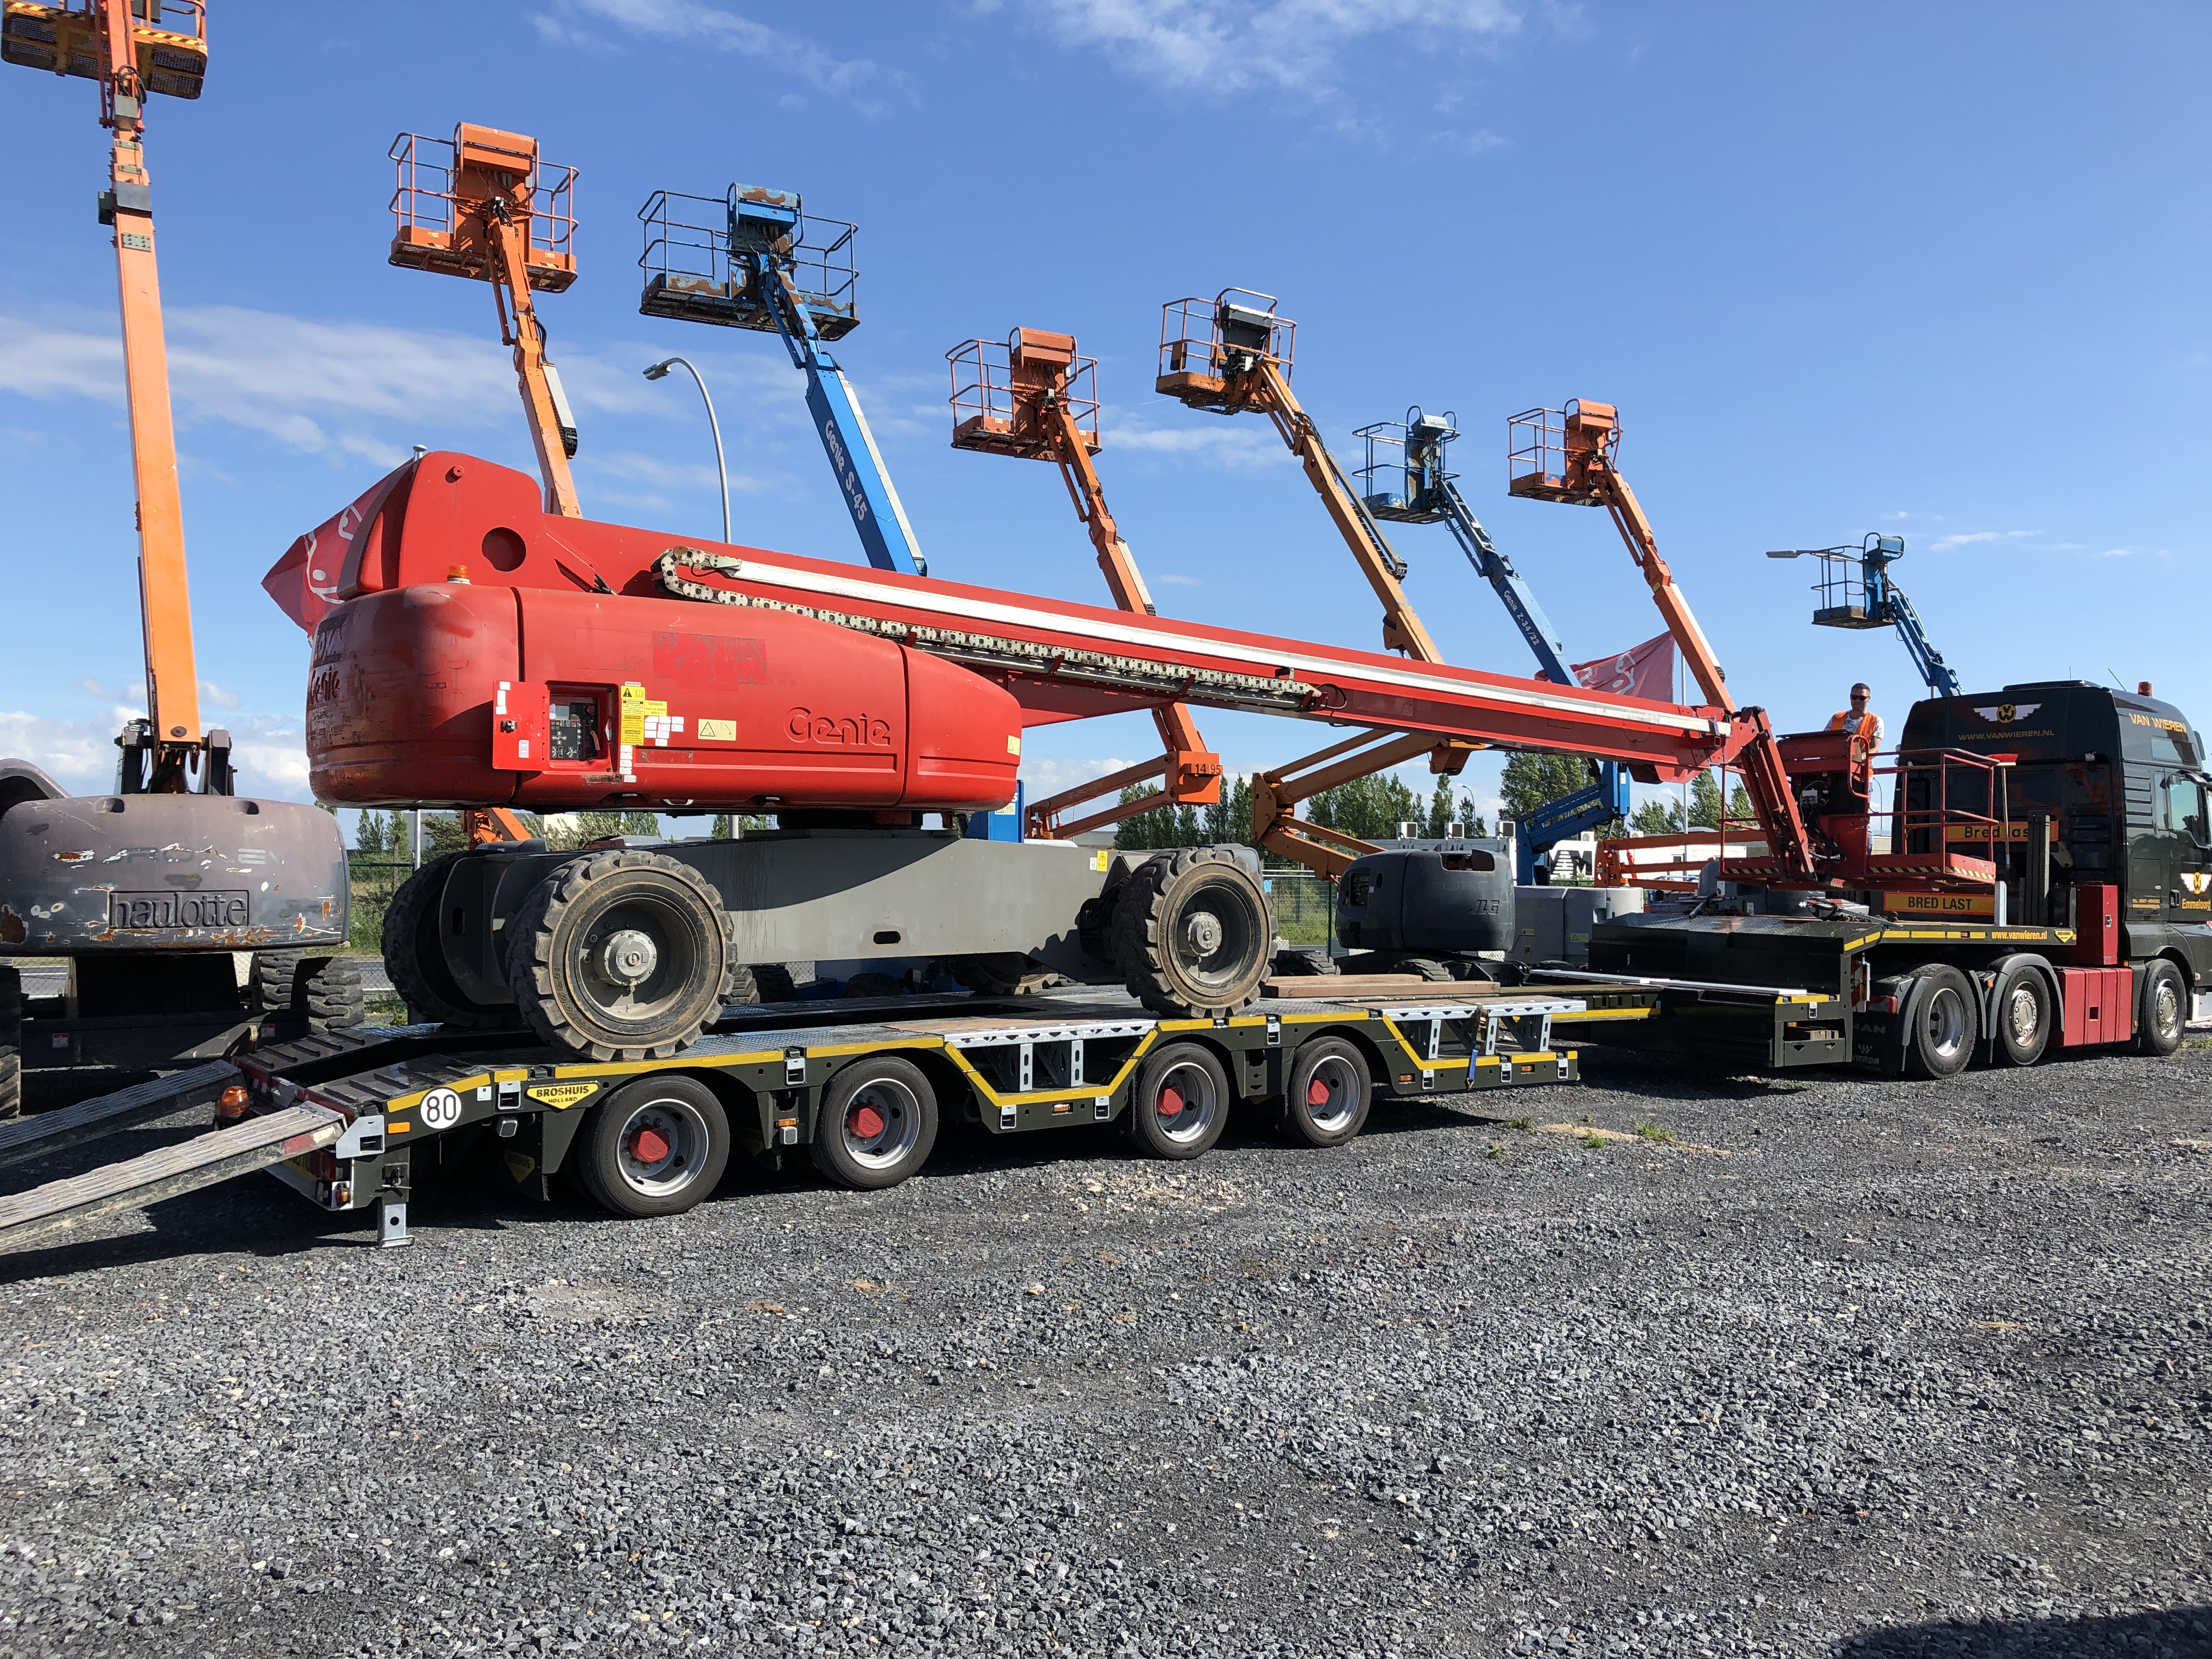 40 meter Telescopic Boomlift delivered to Equippo Auction's yard.JPG